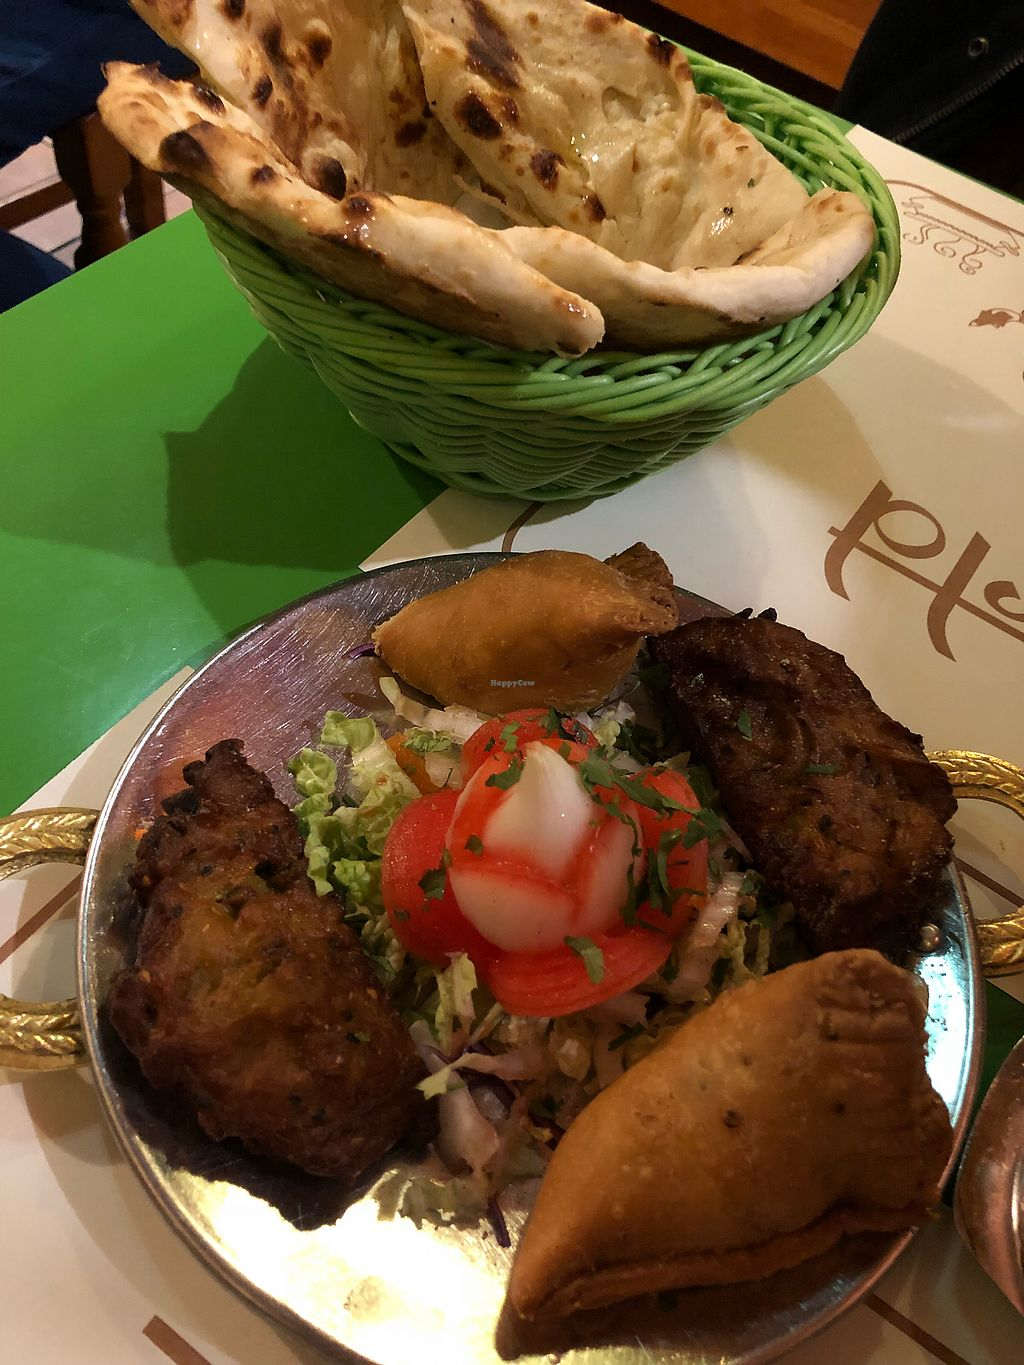 """Photo of Veg World India  by <a href=""""/members/profile/Lor-ah46"""">Lor-ah46</a> <br/>Sanidad y pakoras  <br/> March 18, 2018  - <a href='/contact/abuse/image/6119/372499'>Report</a>"""